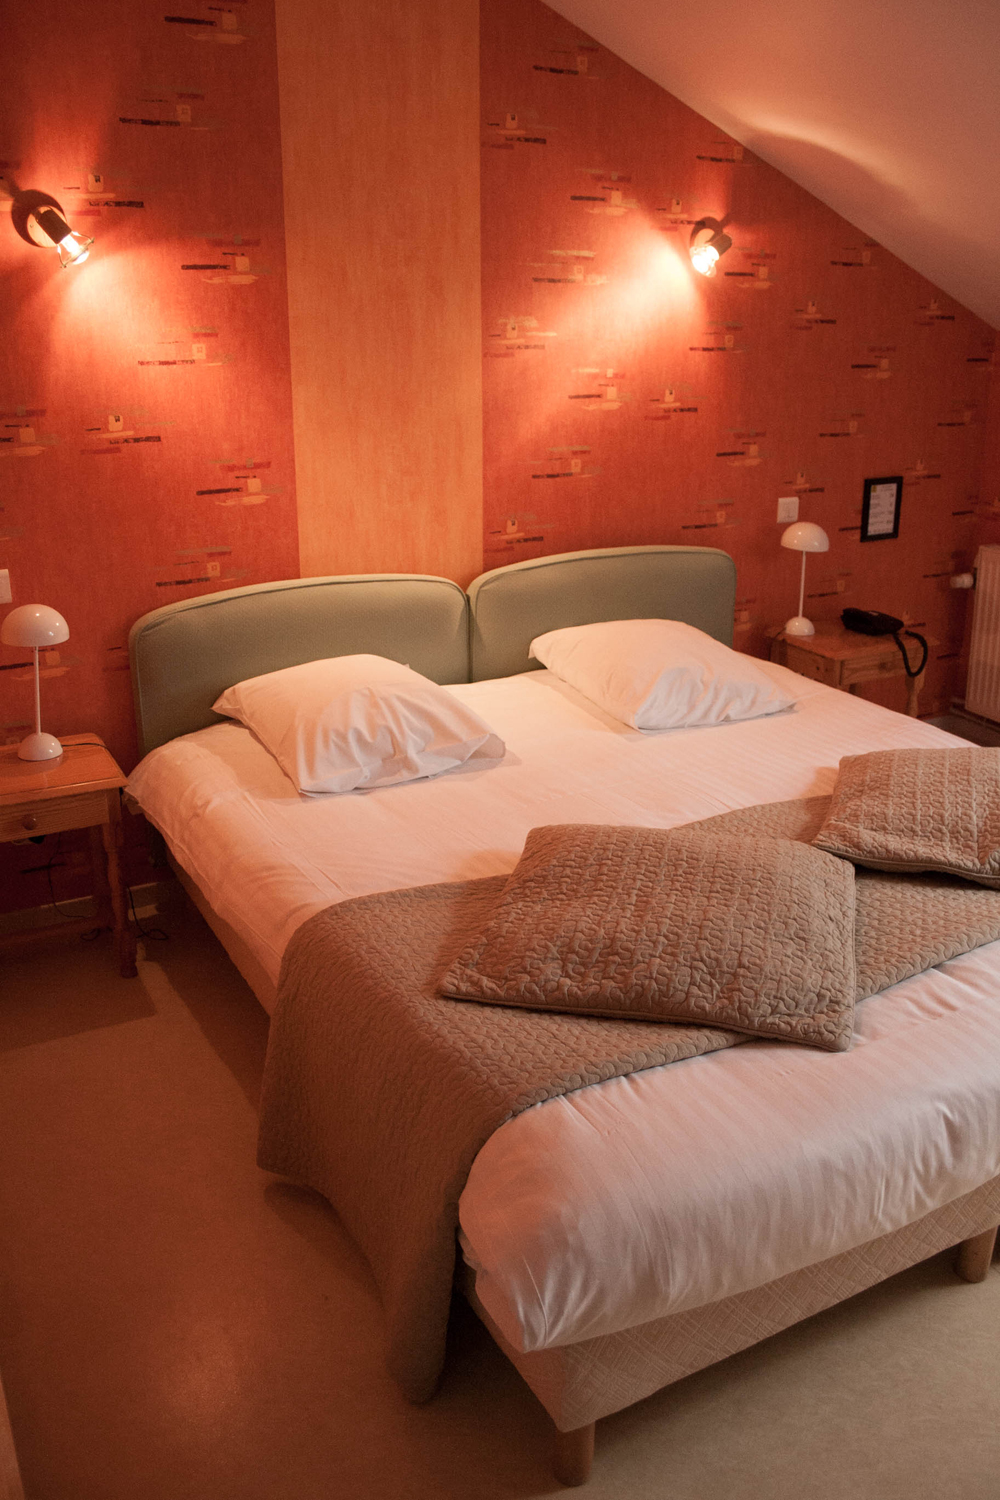 champagne-ardenne_haute-marne_hotel_chaumont_langres-chambre